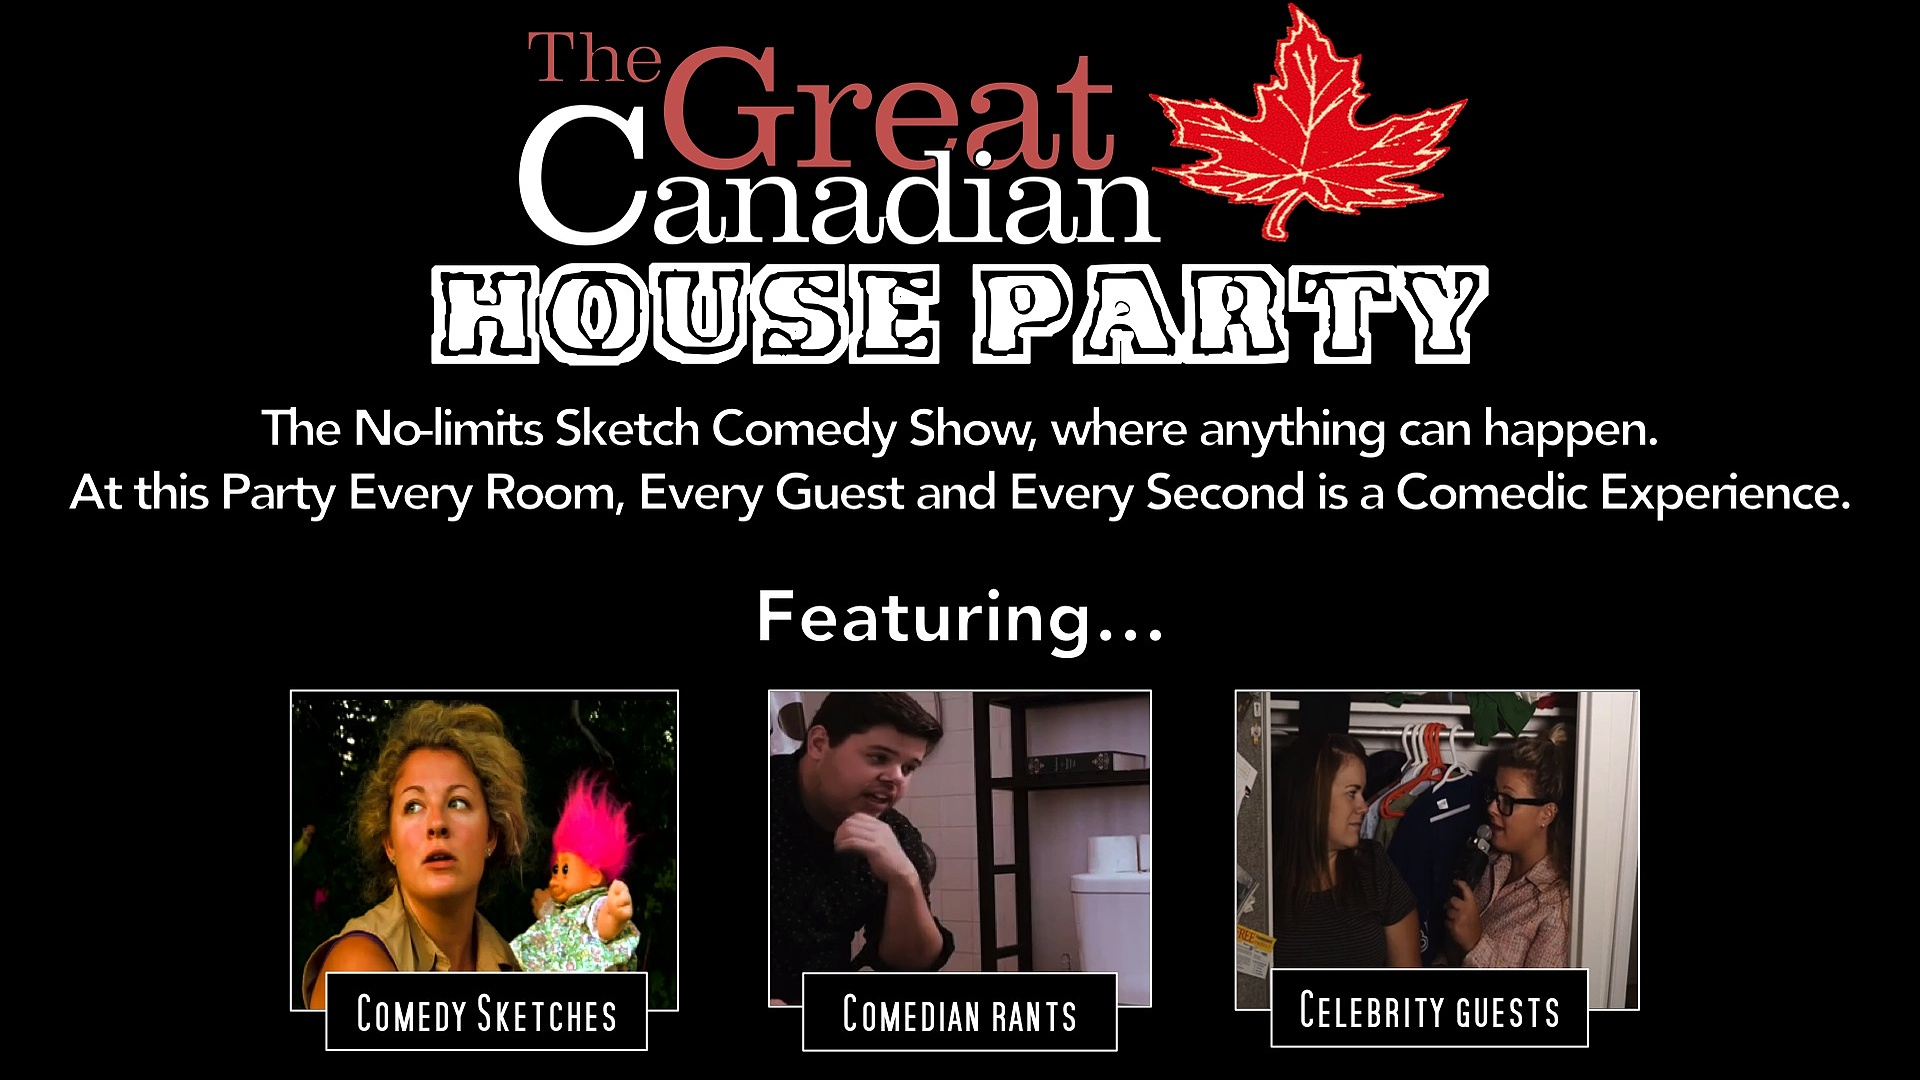 The Great Canadian House Party